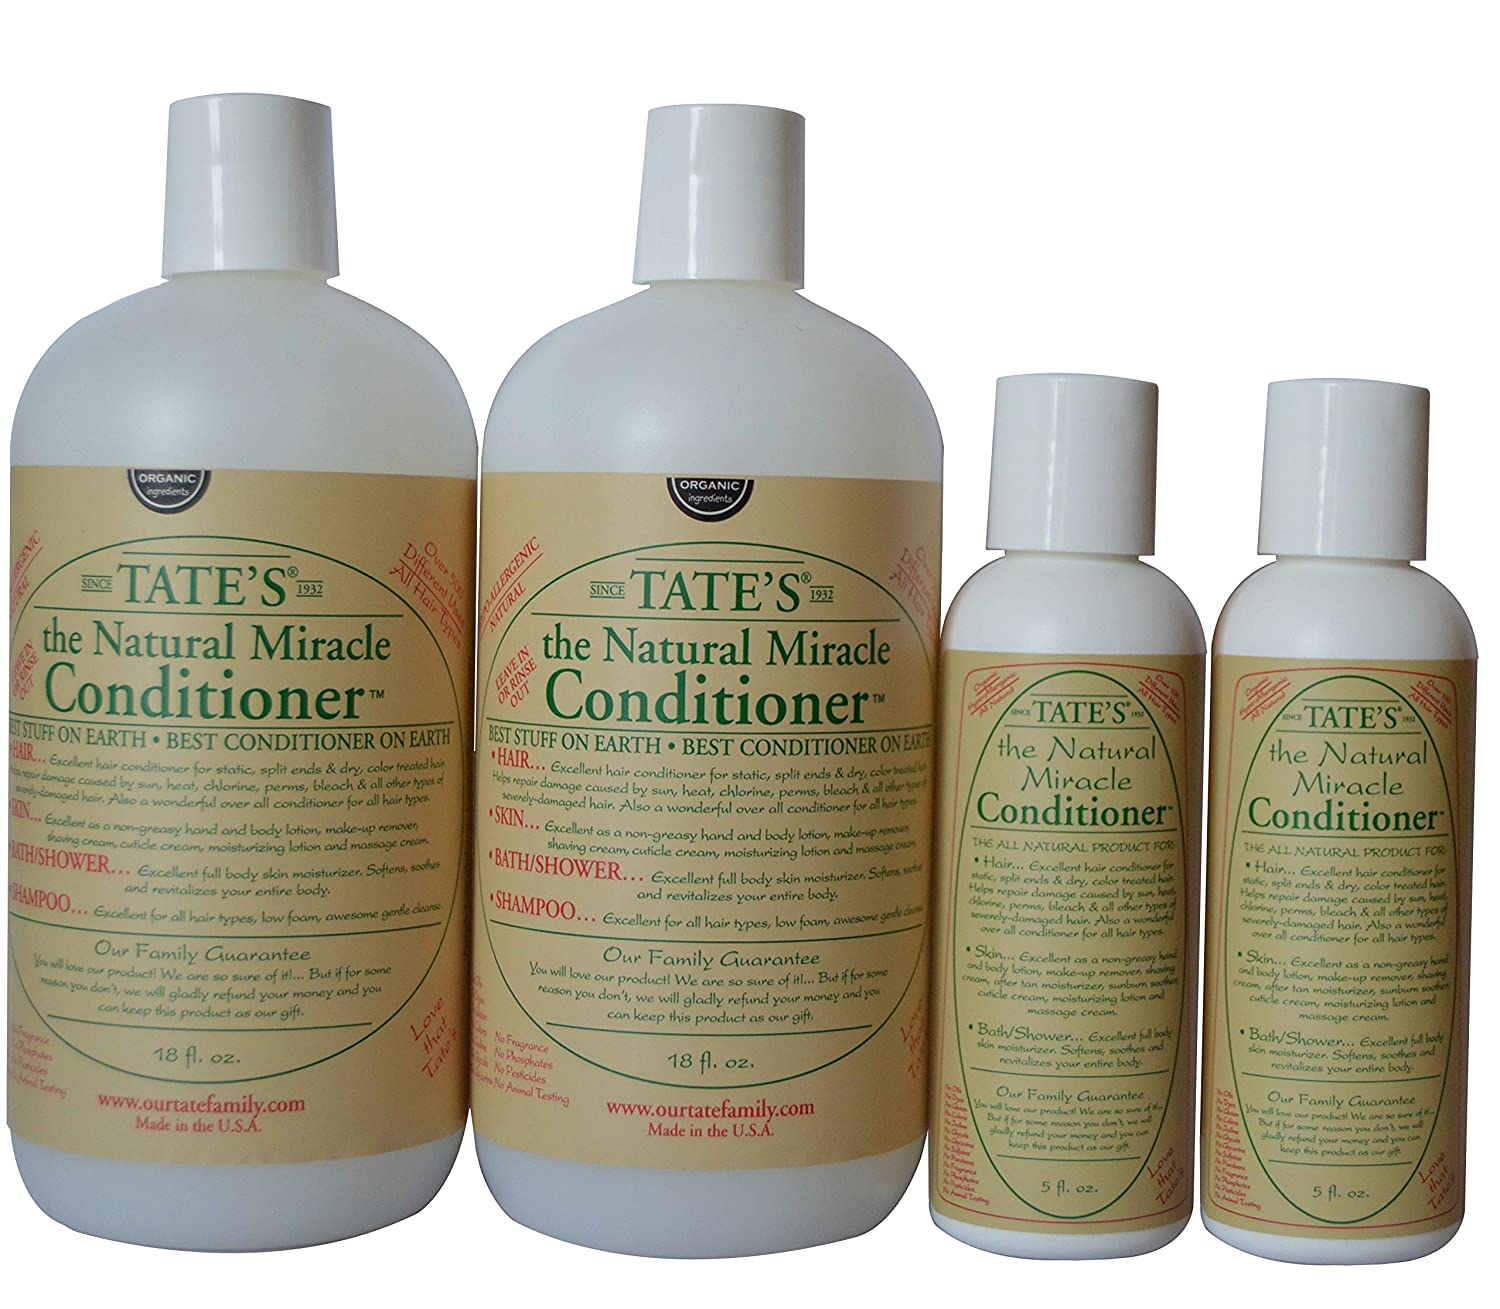 2 Tate's Natural Miracle Conditioners - 18 fl oz with 2 FREE 5 fl oz Mini Conditioner!